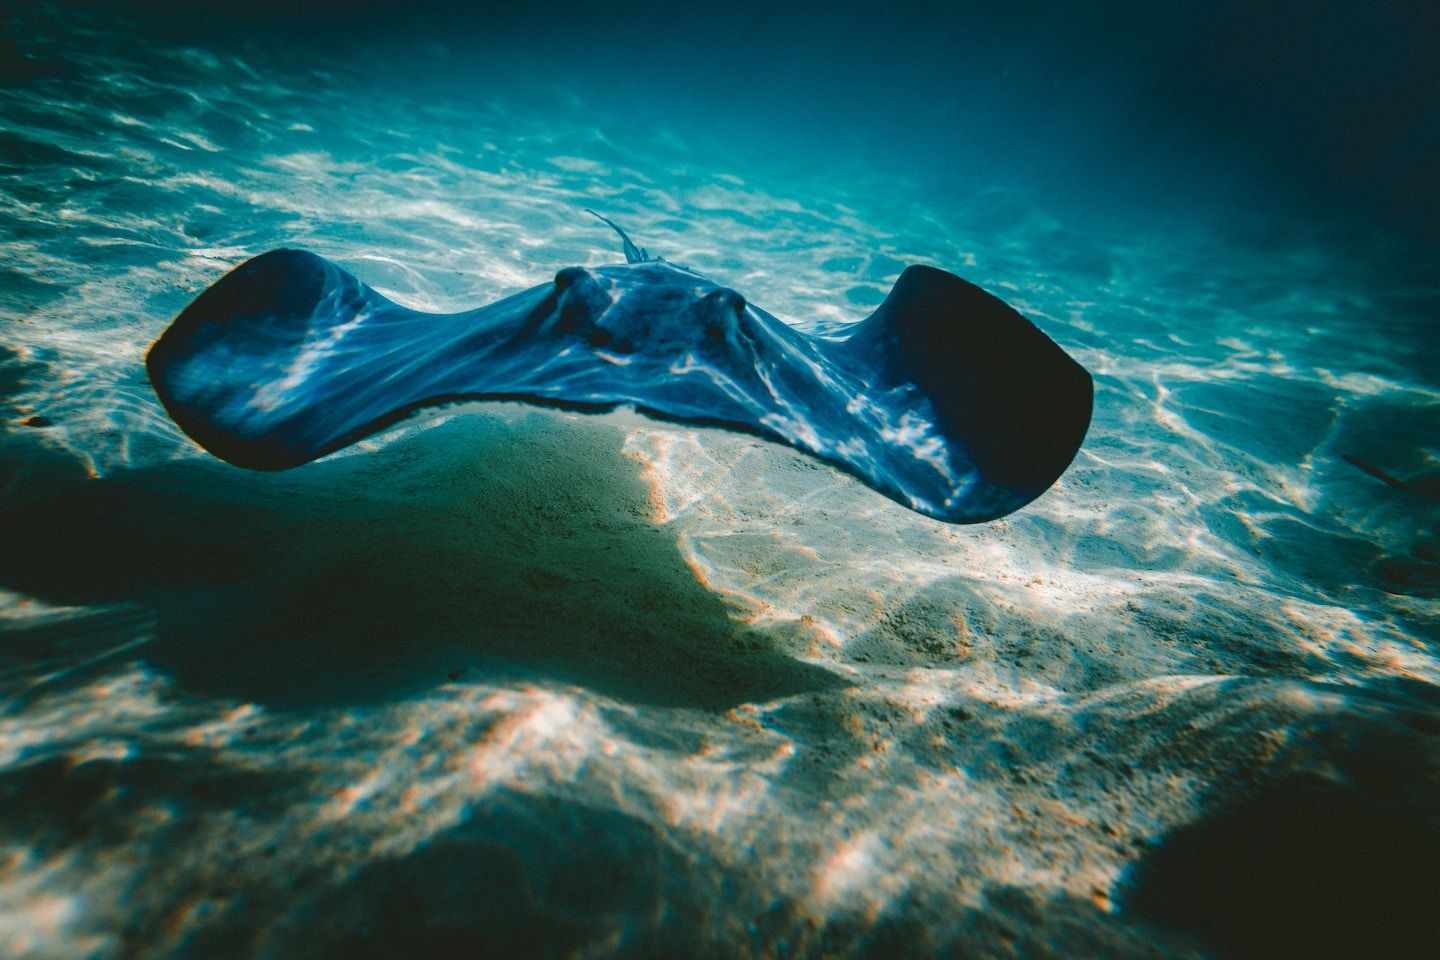 manta ray swimming in shallow water